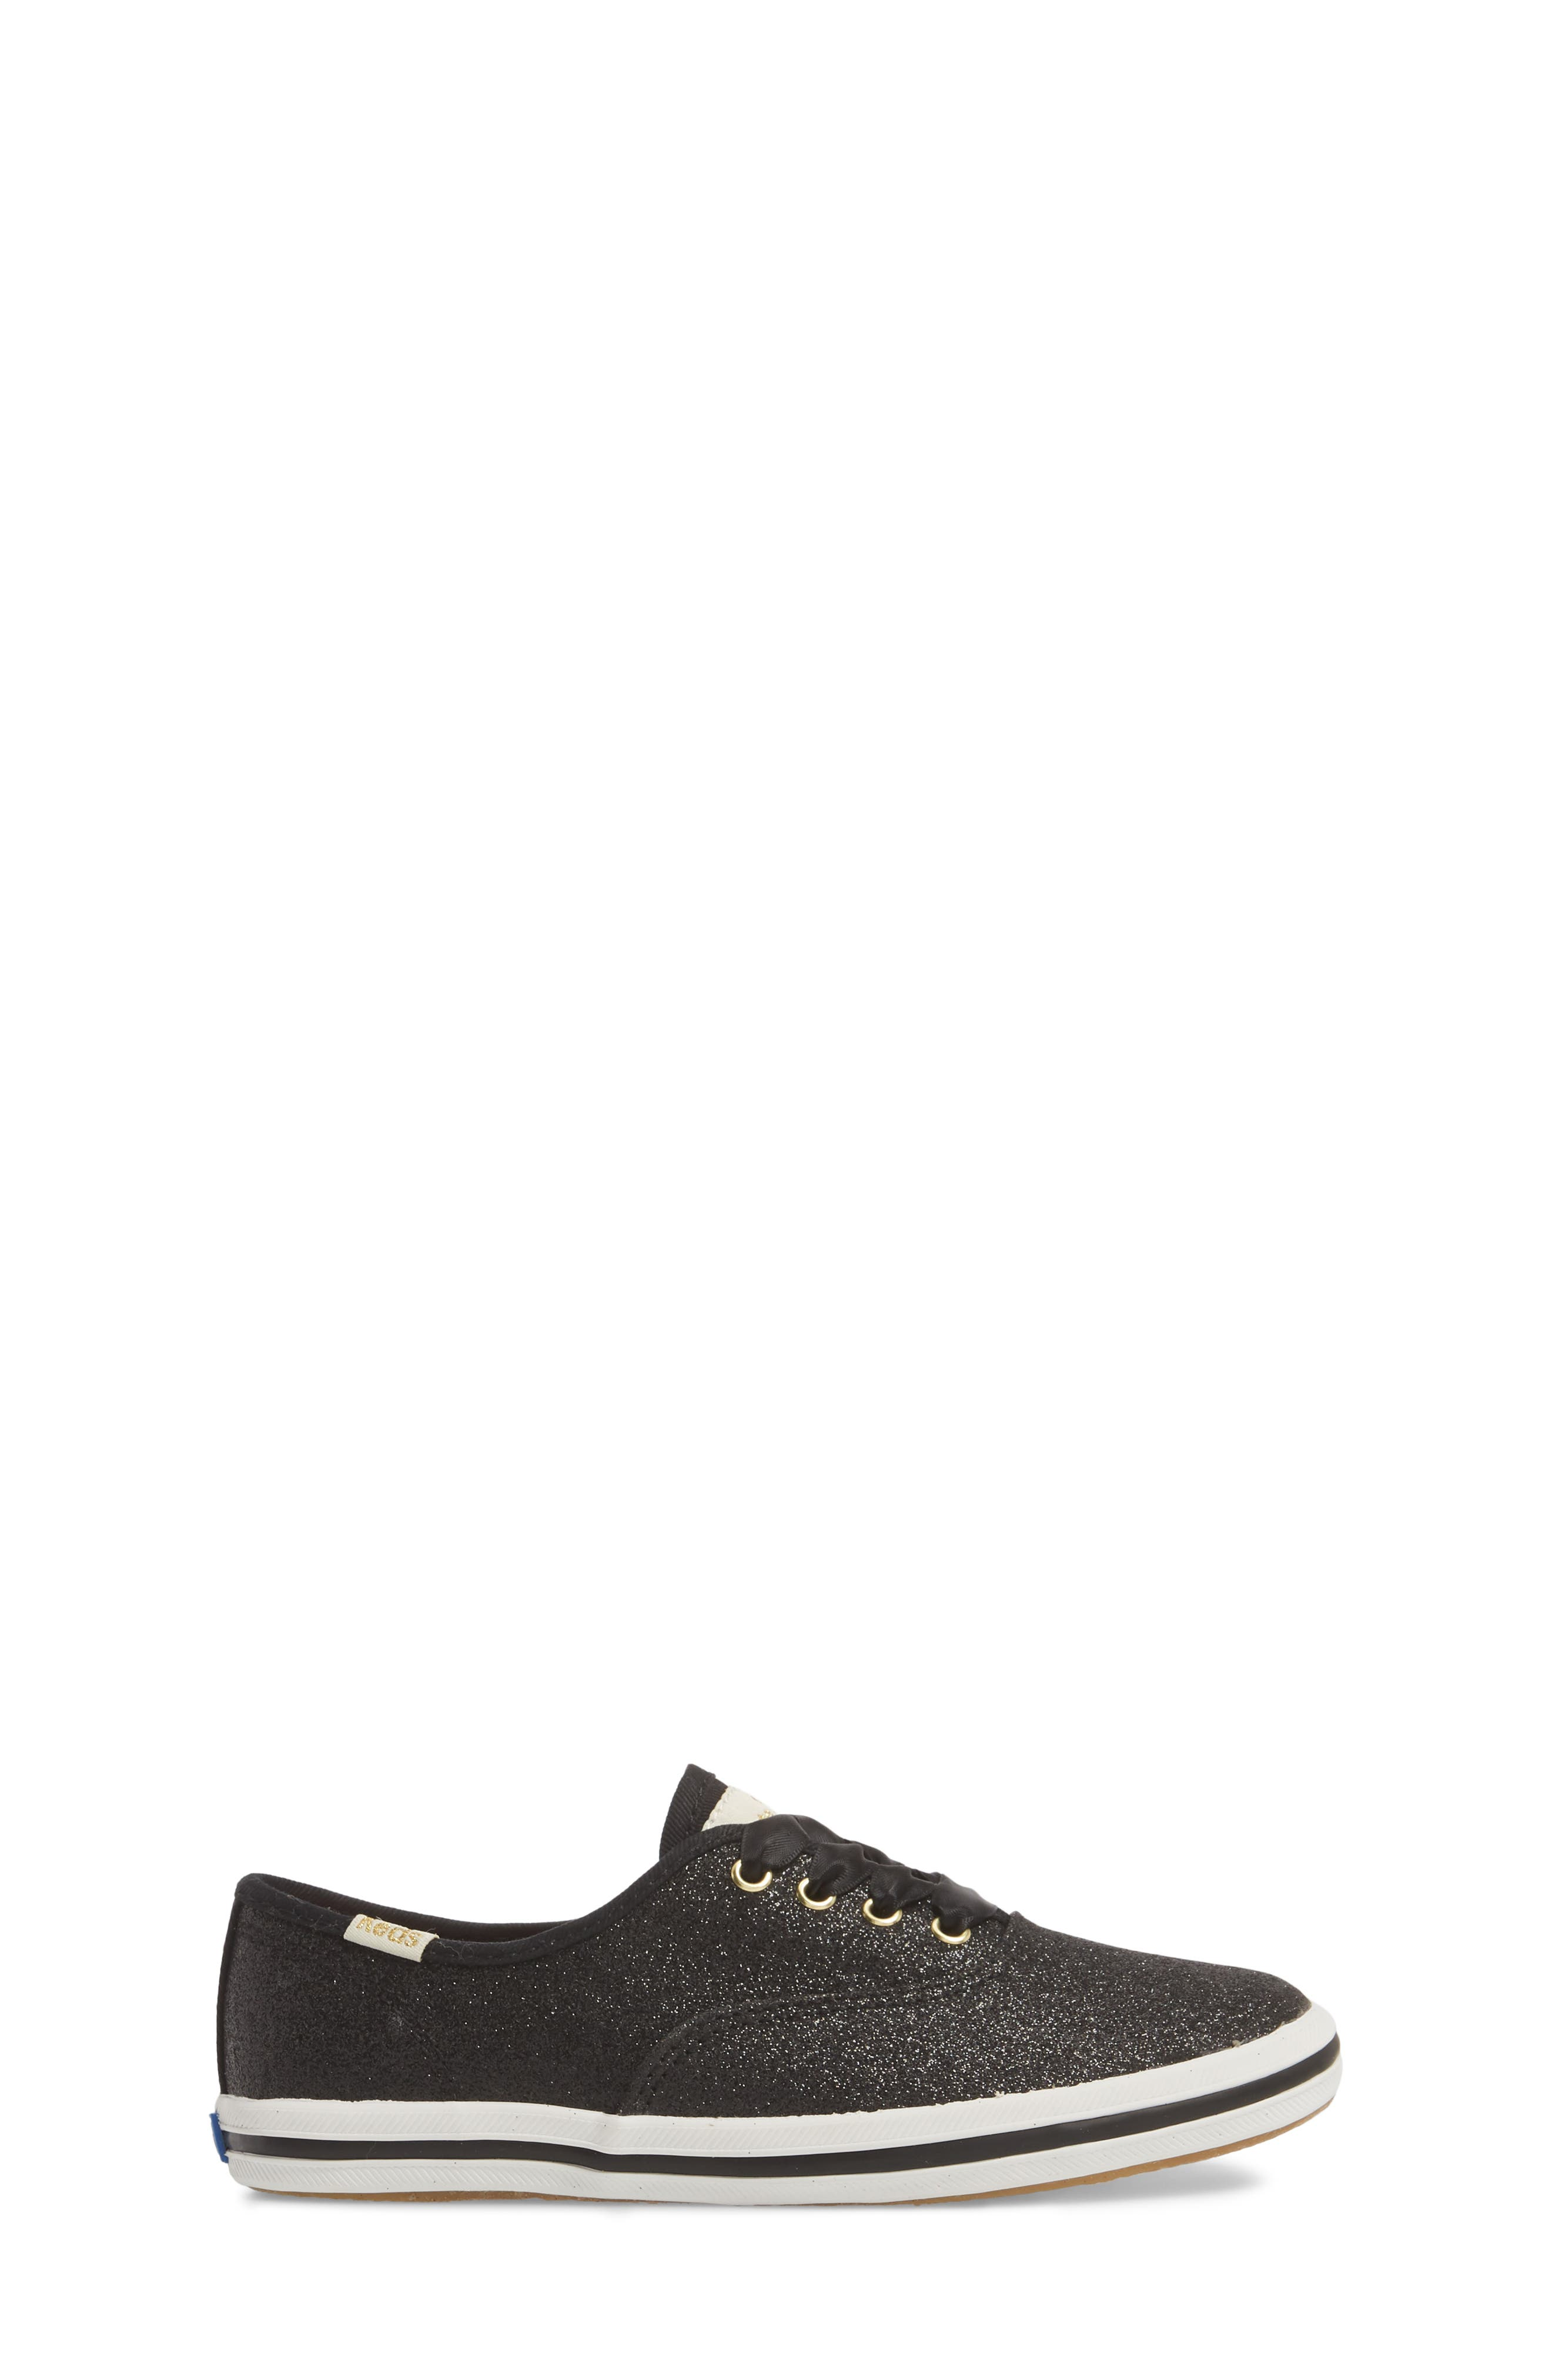 KEDS<SUP>®</SUP>, x kate spade new york Champion Glitter Sneaker, Alternate thumbnail 3, color, BLACK